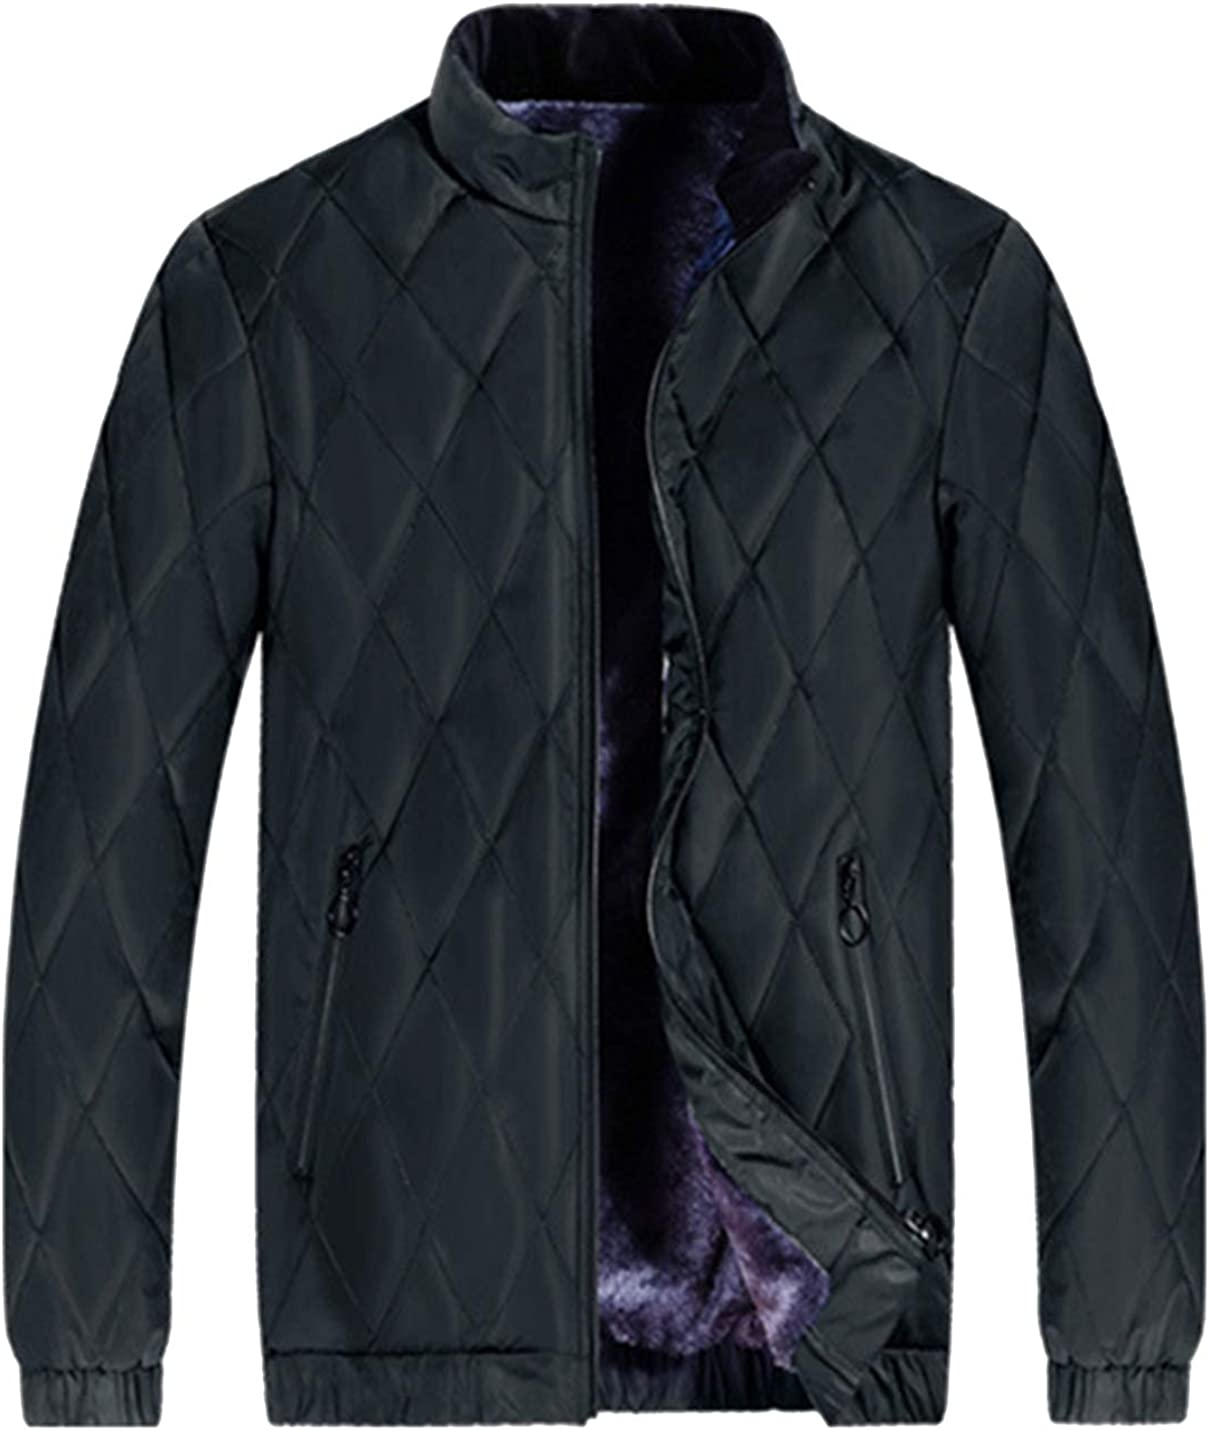 HaoMay Men's Comfy Full Zip Tampa Mall Fleece Gifts Jacket Outwear Lined Winter